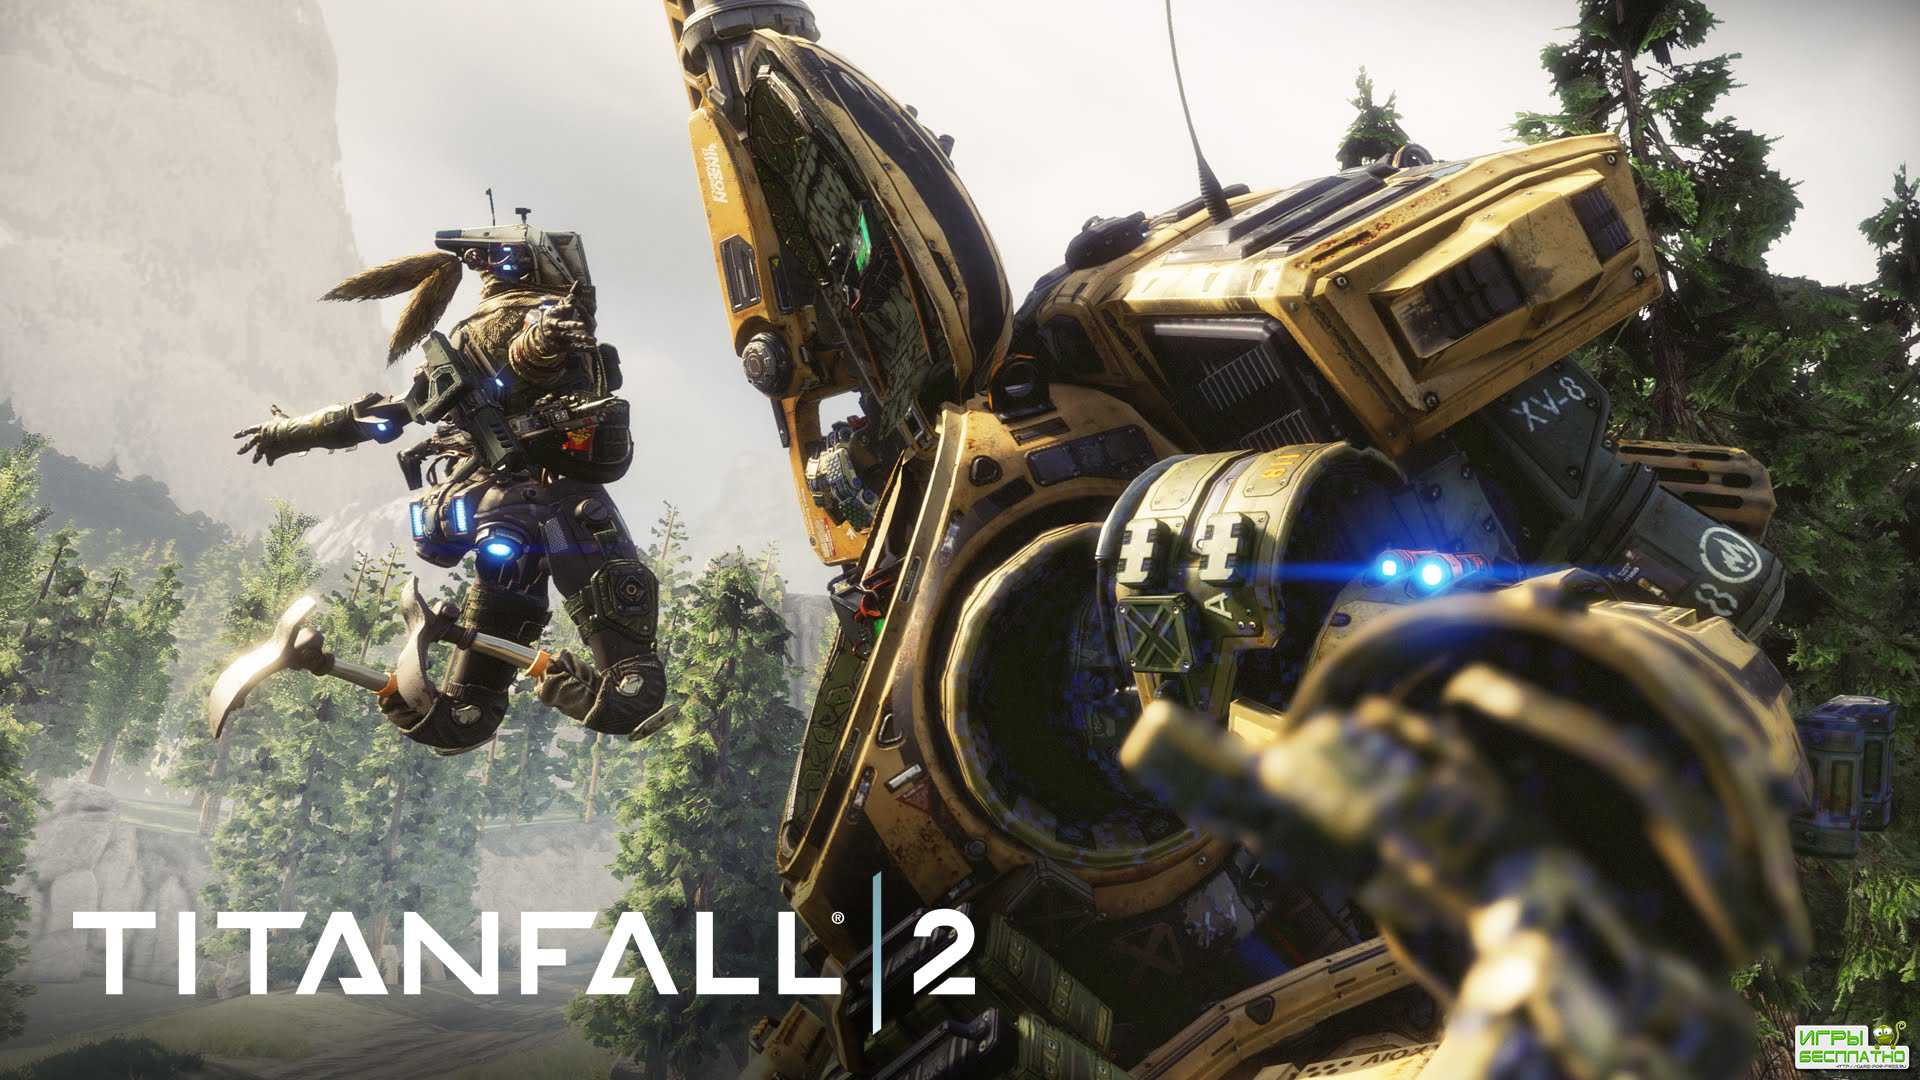 Titanfall 2: CTF Gameplay on 'Black Water Canal' Map